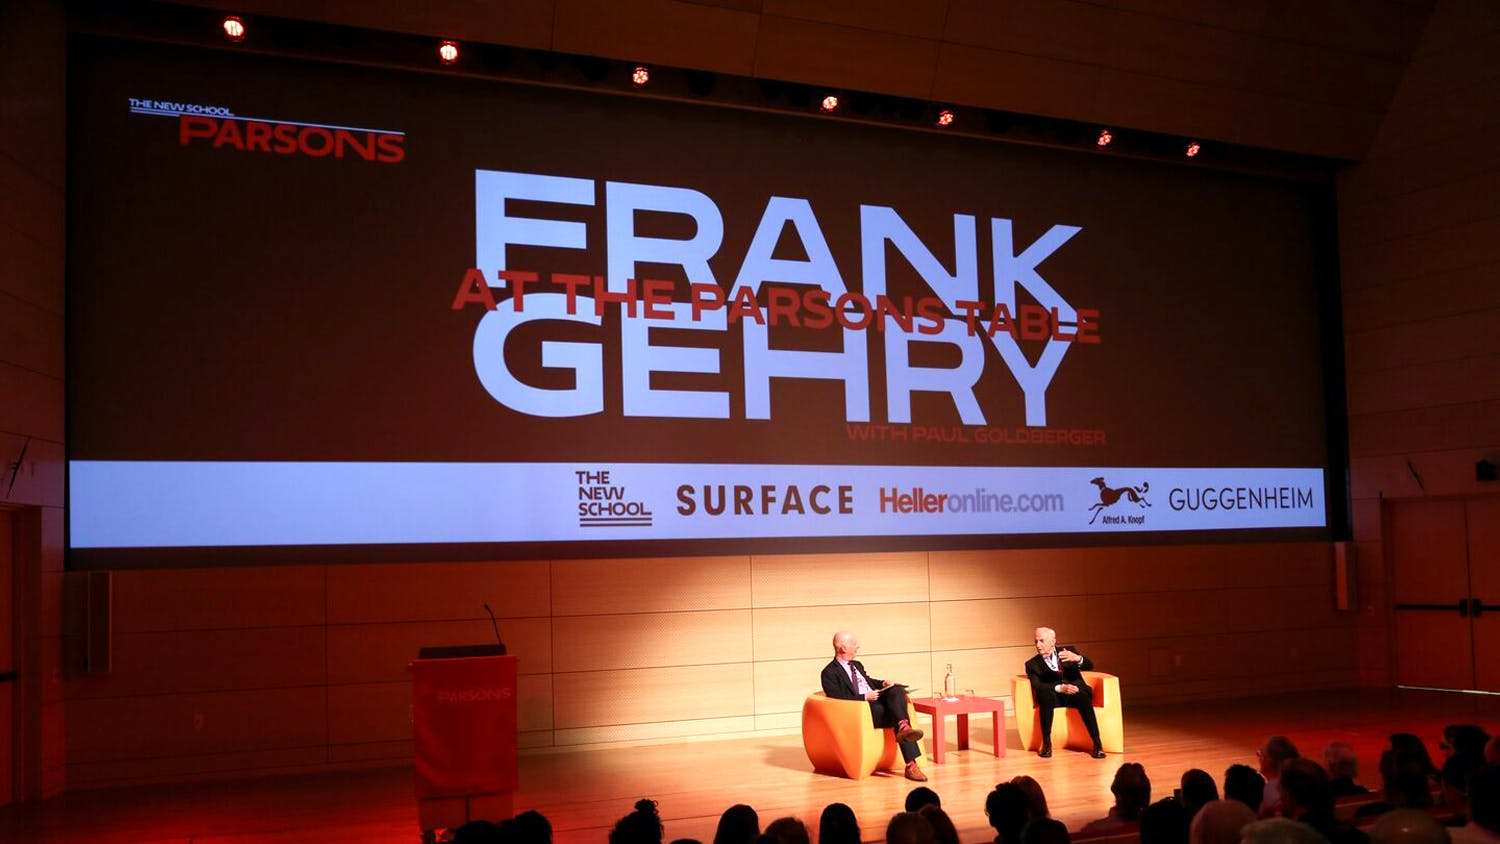 Frank Gehry event